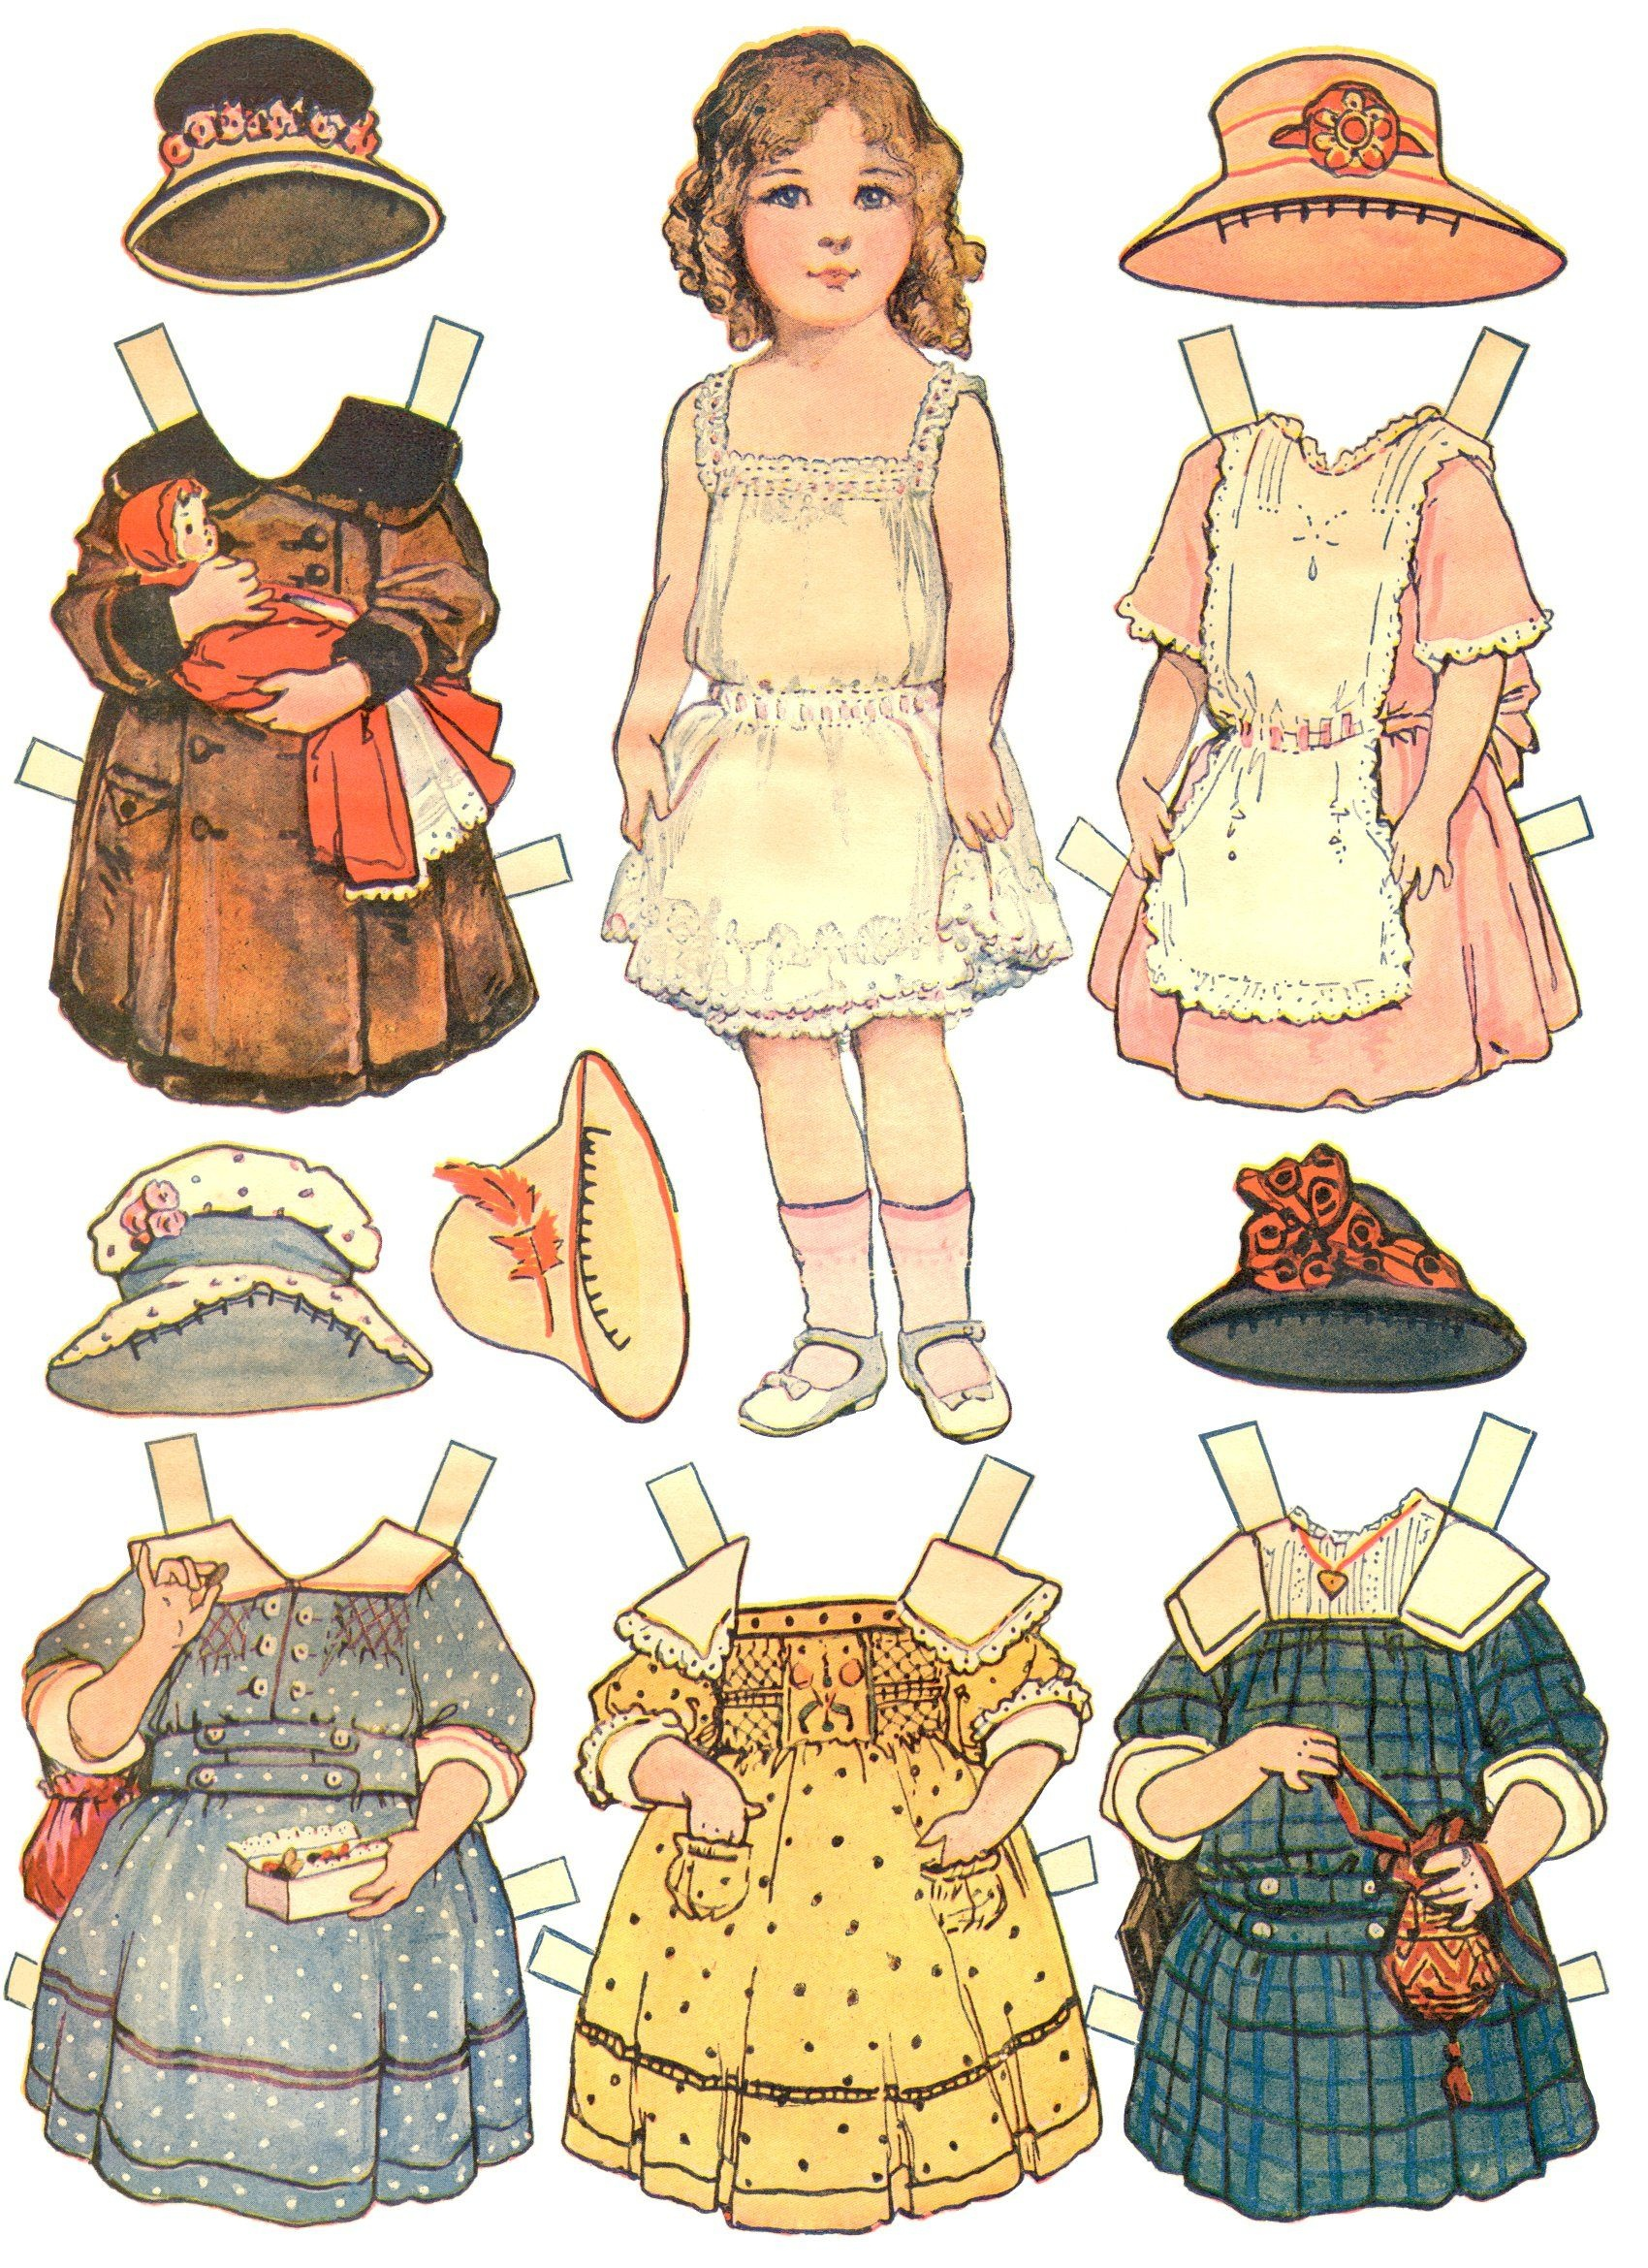 Paper Dolls And Paper Doll Dresses – Printable From Kid Fun | Thema - Free Printable Paper Dolls